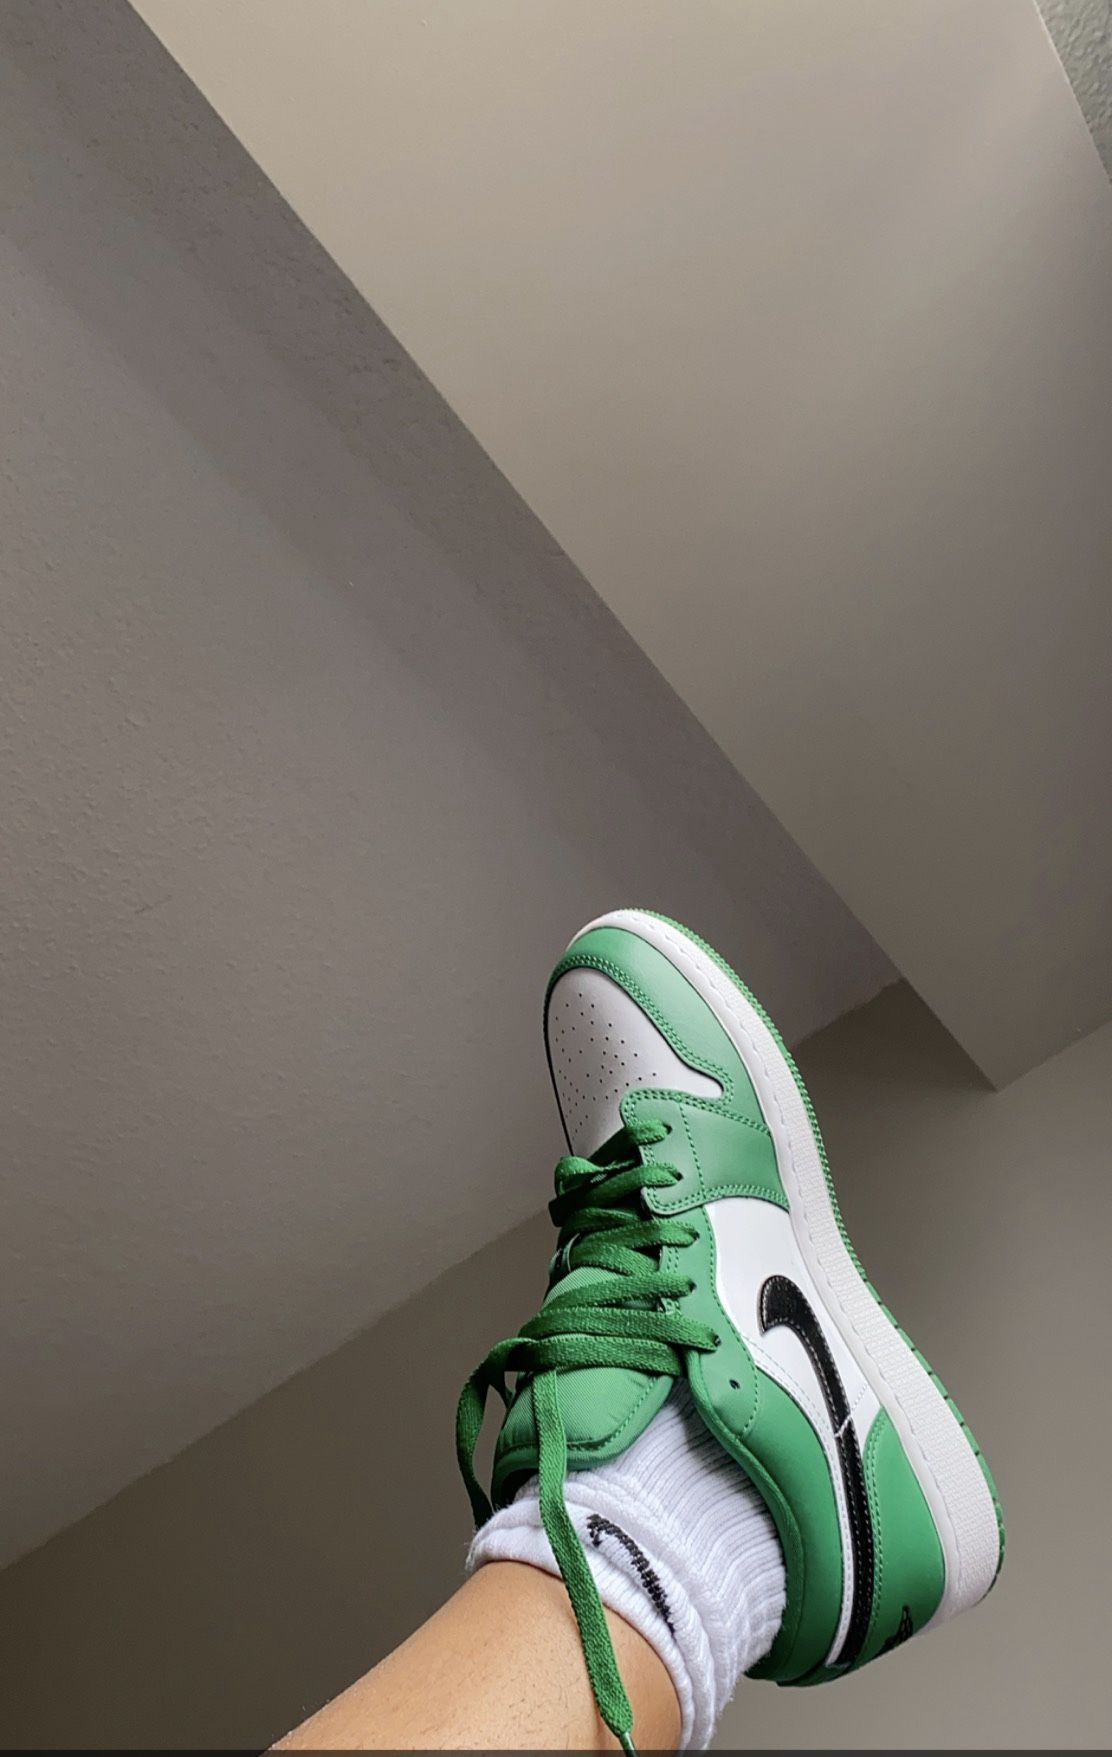 Pine Green Jordan 1 Lows In 2020 Hype Shoes Jordan Shoes Girls Custom Nike Shoes